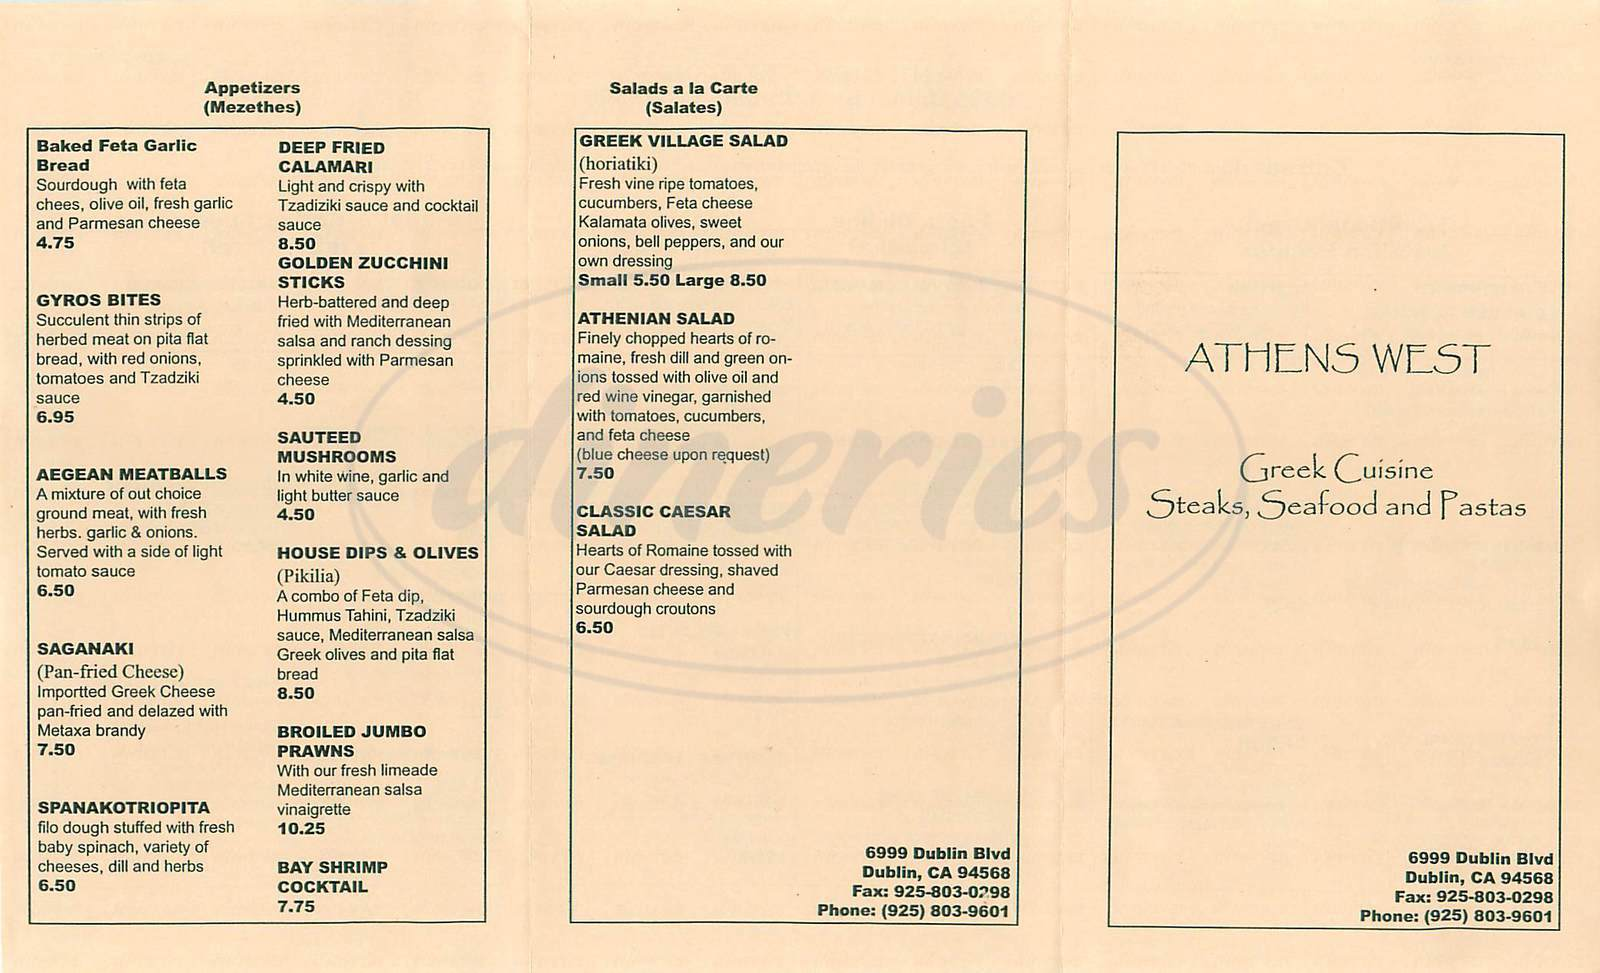 menu for Athens West